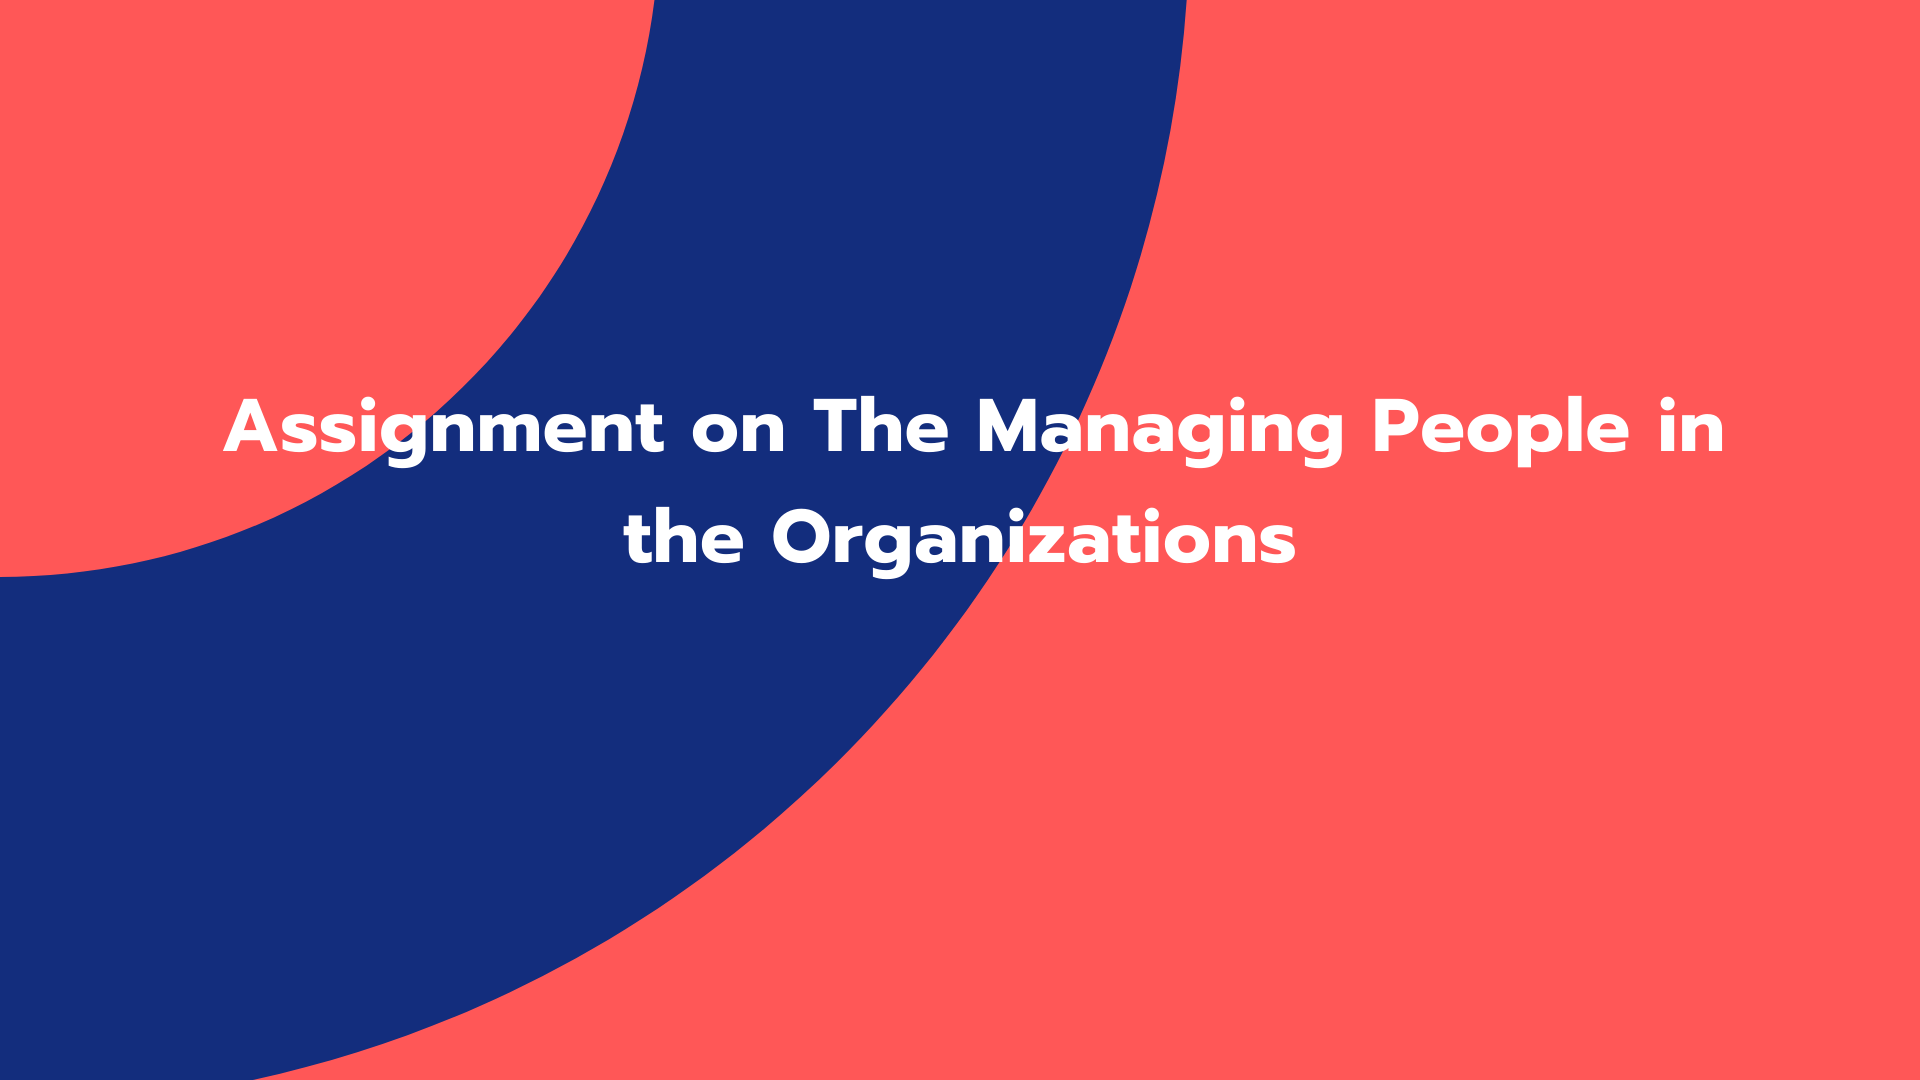 Assignment on The Managing People in the Organizations